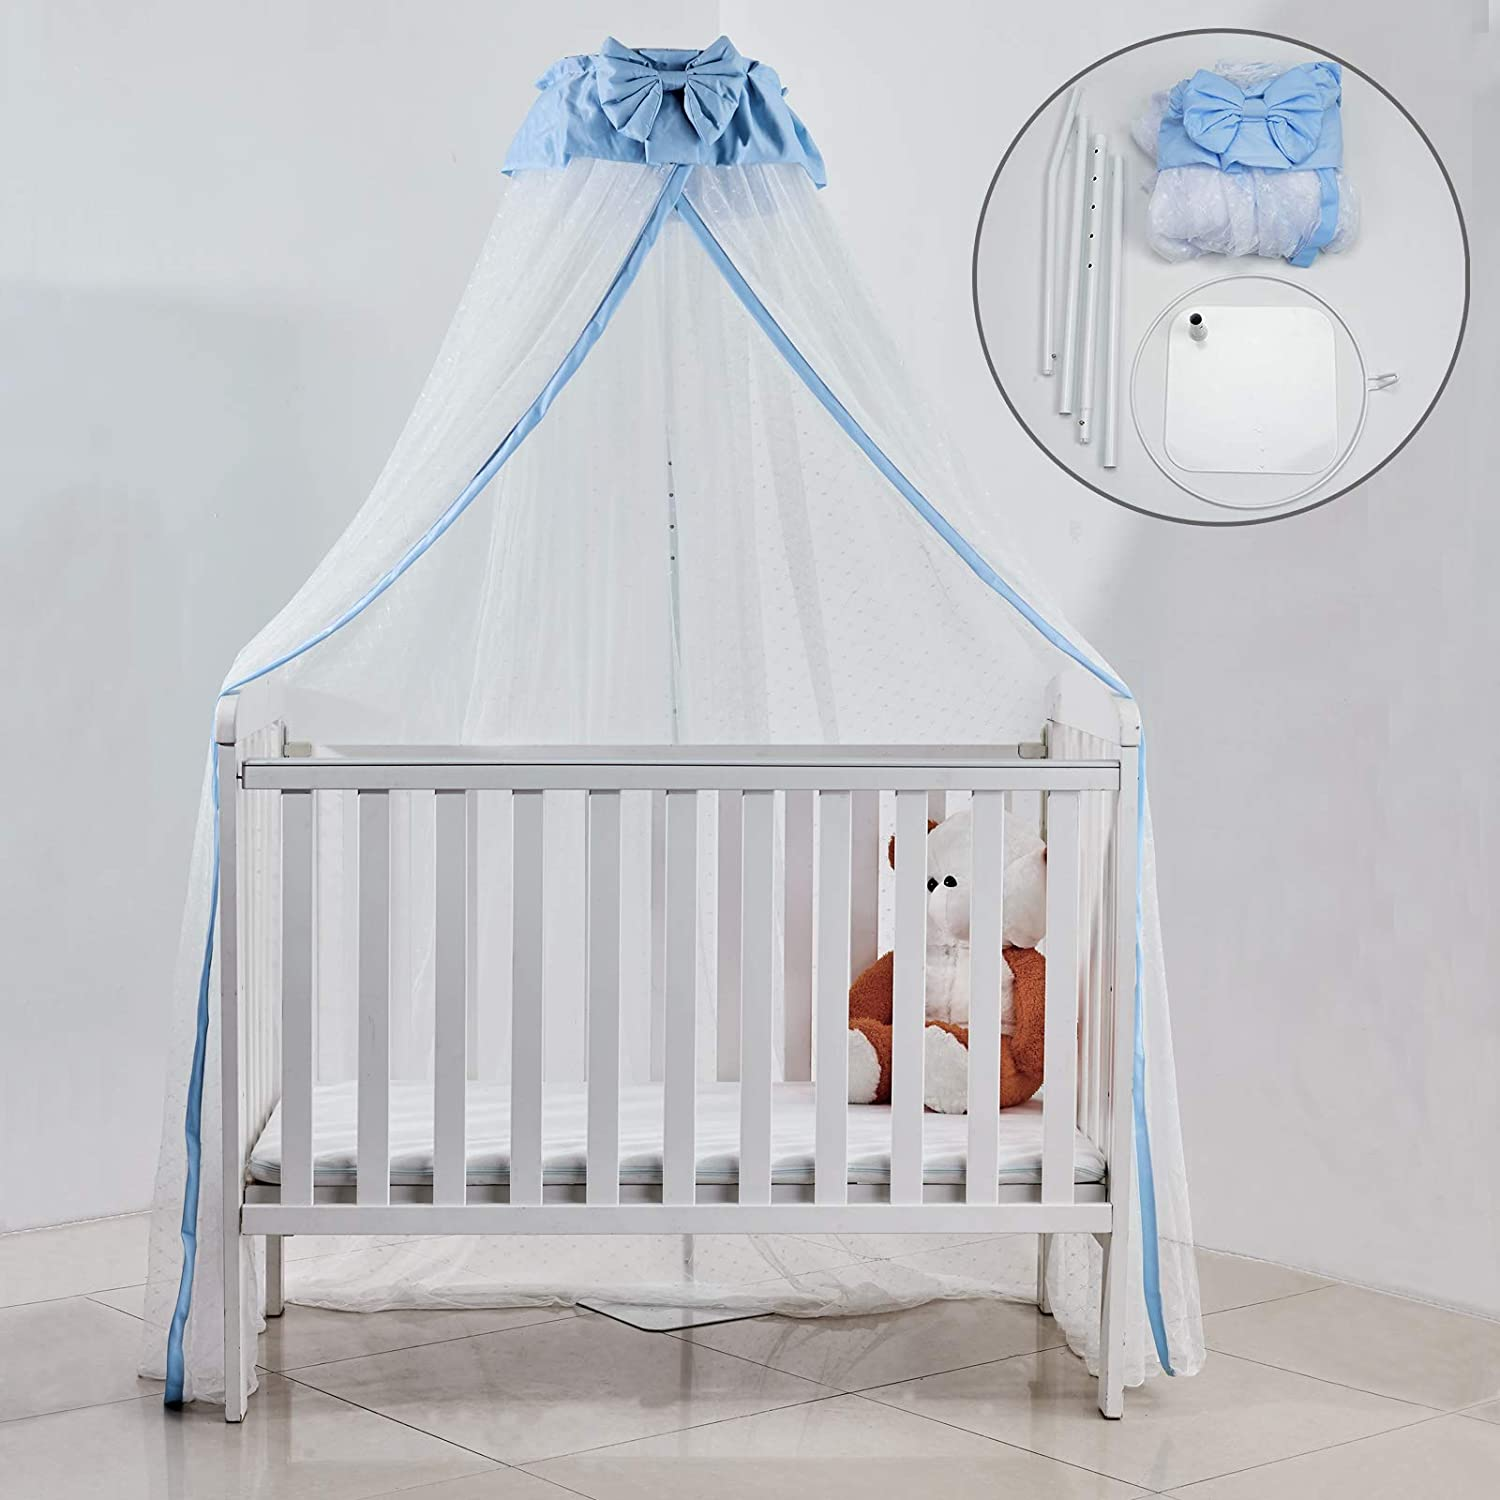 Crib Net Set- Baby Bed Dome Canopy Netting Cover with Metal Adjustable Floor Stand Holder Infant Toddler Cots Tent Net-Protect Your Baby from Bites(Blue/Floor Stand Holder)